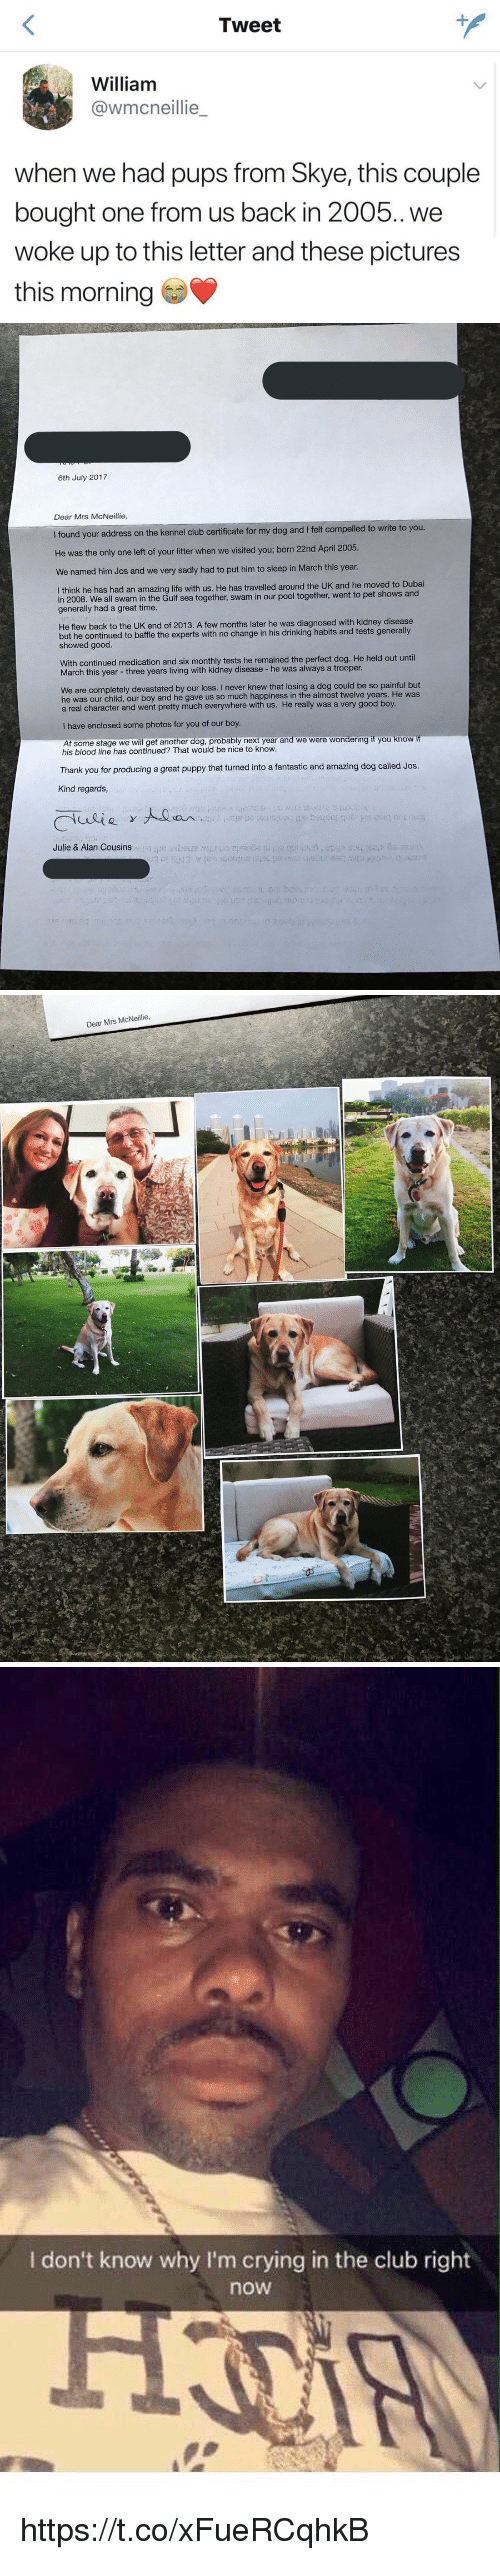 Club, Crying, and Drinking: Tweet  William  @wmcneillie  when we had pups from Skye, this couple  bought one from us back in 2005.. we  woke up to this letter and these pictures  this morning   6th July 2017  Dear Mrs McNeillie  I found your address on the kennel club certificate for my dog and I felt compelled to write to you  He was the only one left of your litter when we visited you; born 22nd April 2005.  We named him Jos and we very sadly had to put him to sleep in March this year  think he has had an amazing life with us. He has travelled around the UK and he moved to Dubai  in 2008. We all swam in the Gulf sea together, swam in our pool together, went to pet shows and  generally had a great time.  He flew back to the UK end of 2013. A few months later he was diagnosed with kidney disease  but he continued to baffle the experts with no change in his drinking habits and tests generally  showed good.  With continued medication and six monthly tests he remained the perfect dog. He held out until  March this year - three years living with kidney disease - he was always a trooper.  We are completely devastated by our loss. I never knew that losing a dog could be so painful but  he was our child, our boy and he gave us so much happiness in the almost twelve years. He was  a real character and went pretty much everywhere with us. He really was a very good boy.  I have enclosed some photos for you of our boy  At some stage we will get another dog, probably next year and we were wondering if you know i  his blood line has continued? That would be nice to know.  Thank you for producing a great puppy that turned into a fantastic and amazing dog called Jos.  Kind regards,  Julie & Alan Cousins   Dear Mrs McNeillie   I don't know why I'm crying in the club right  now https://t.co/xFueRCqhkB